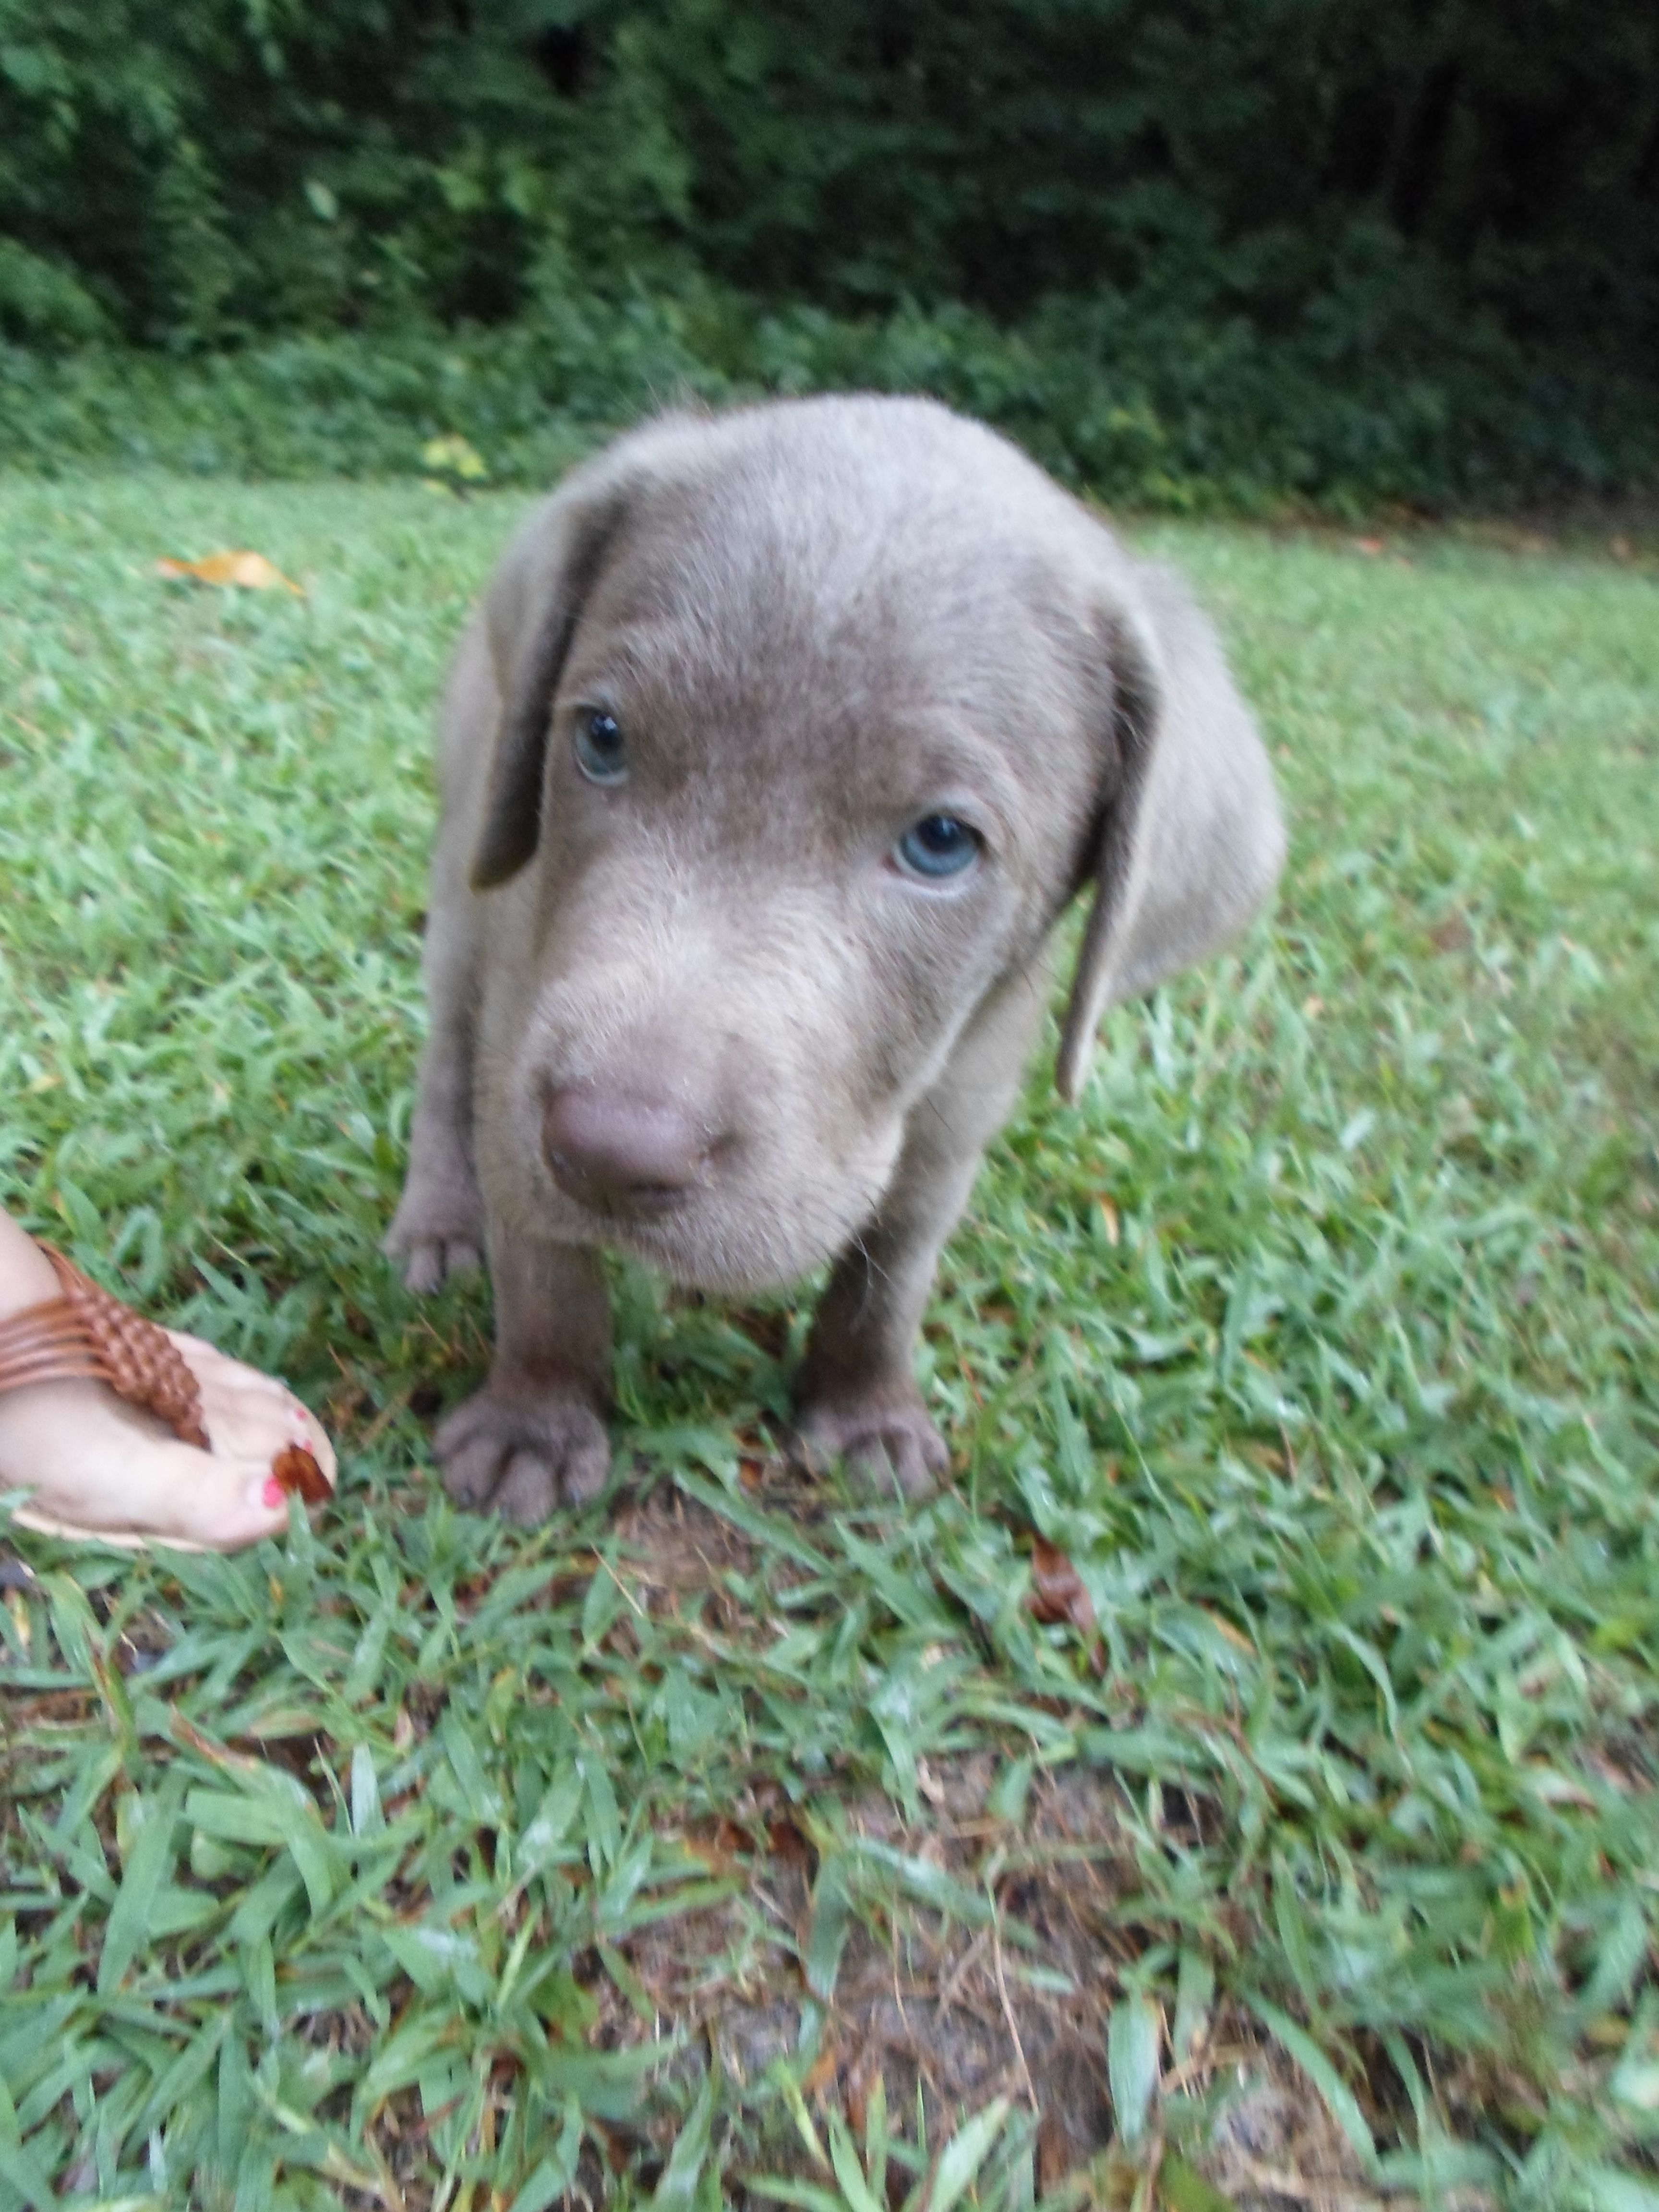 Zane! Our sweet baby silver lab puppy, and his precious